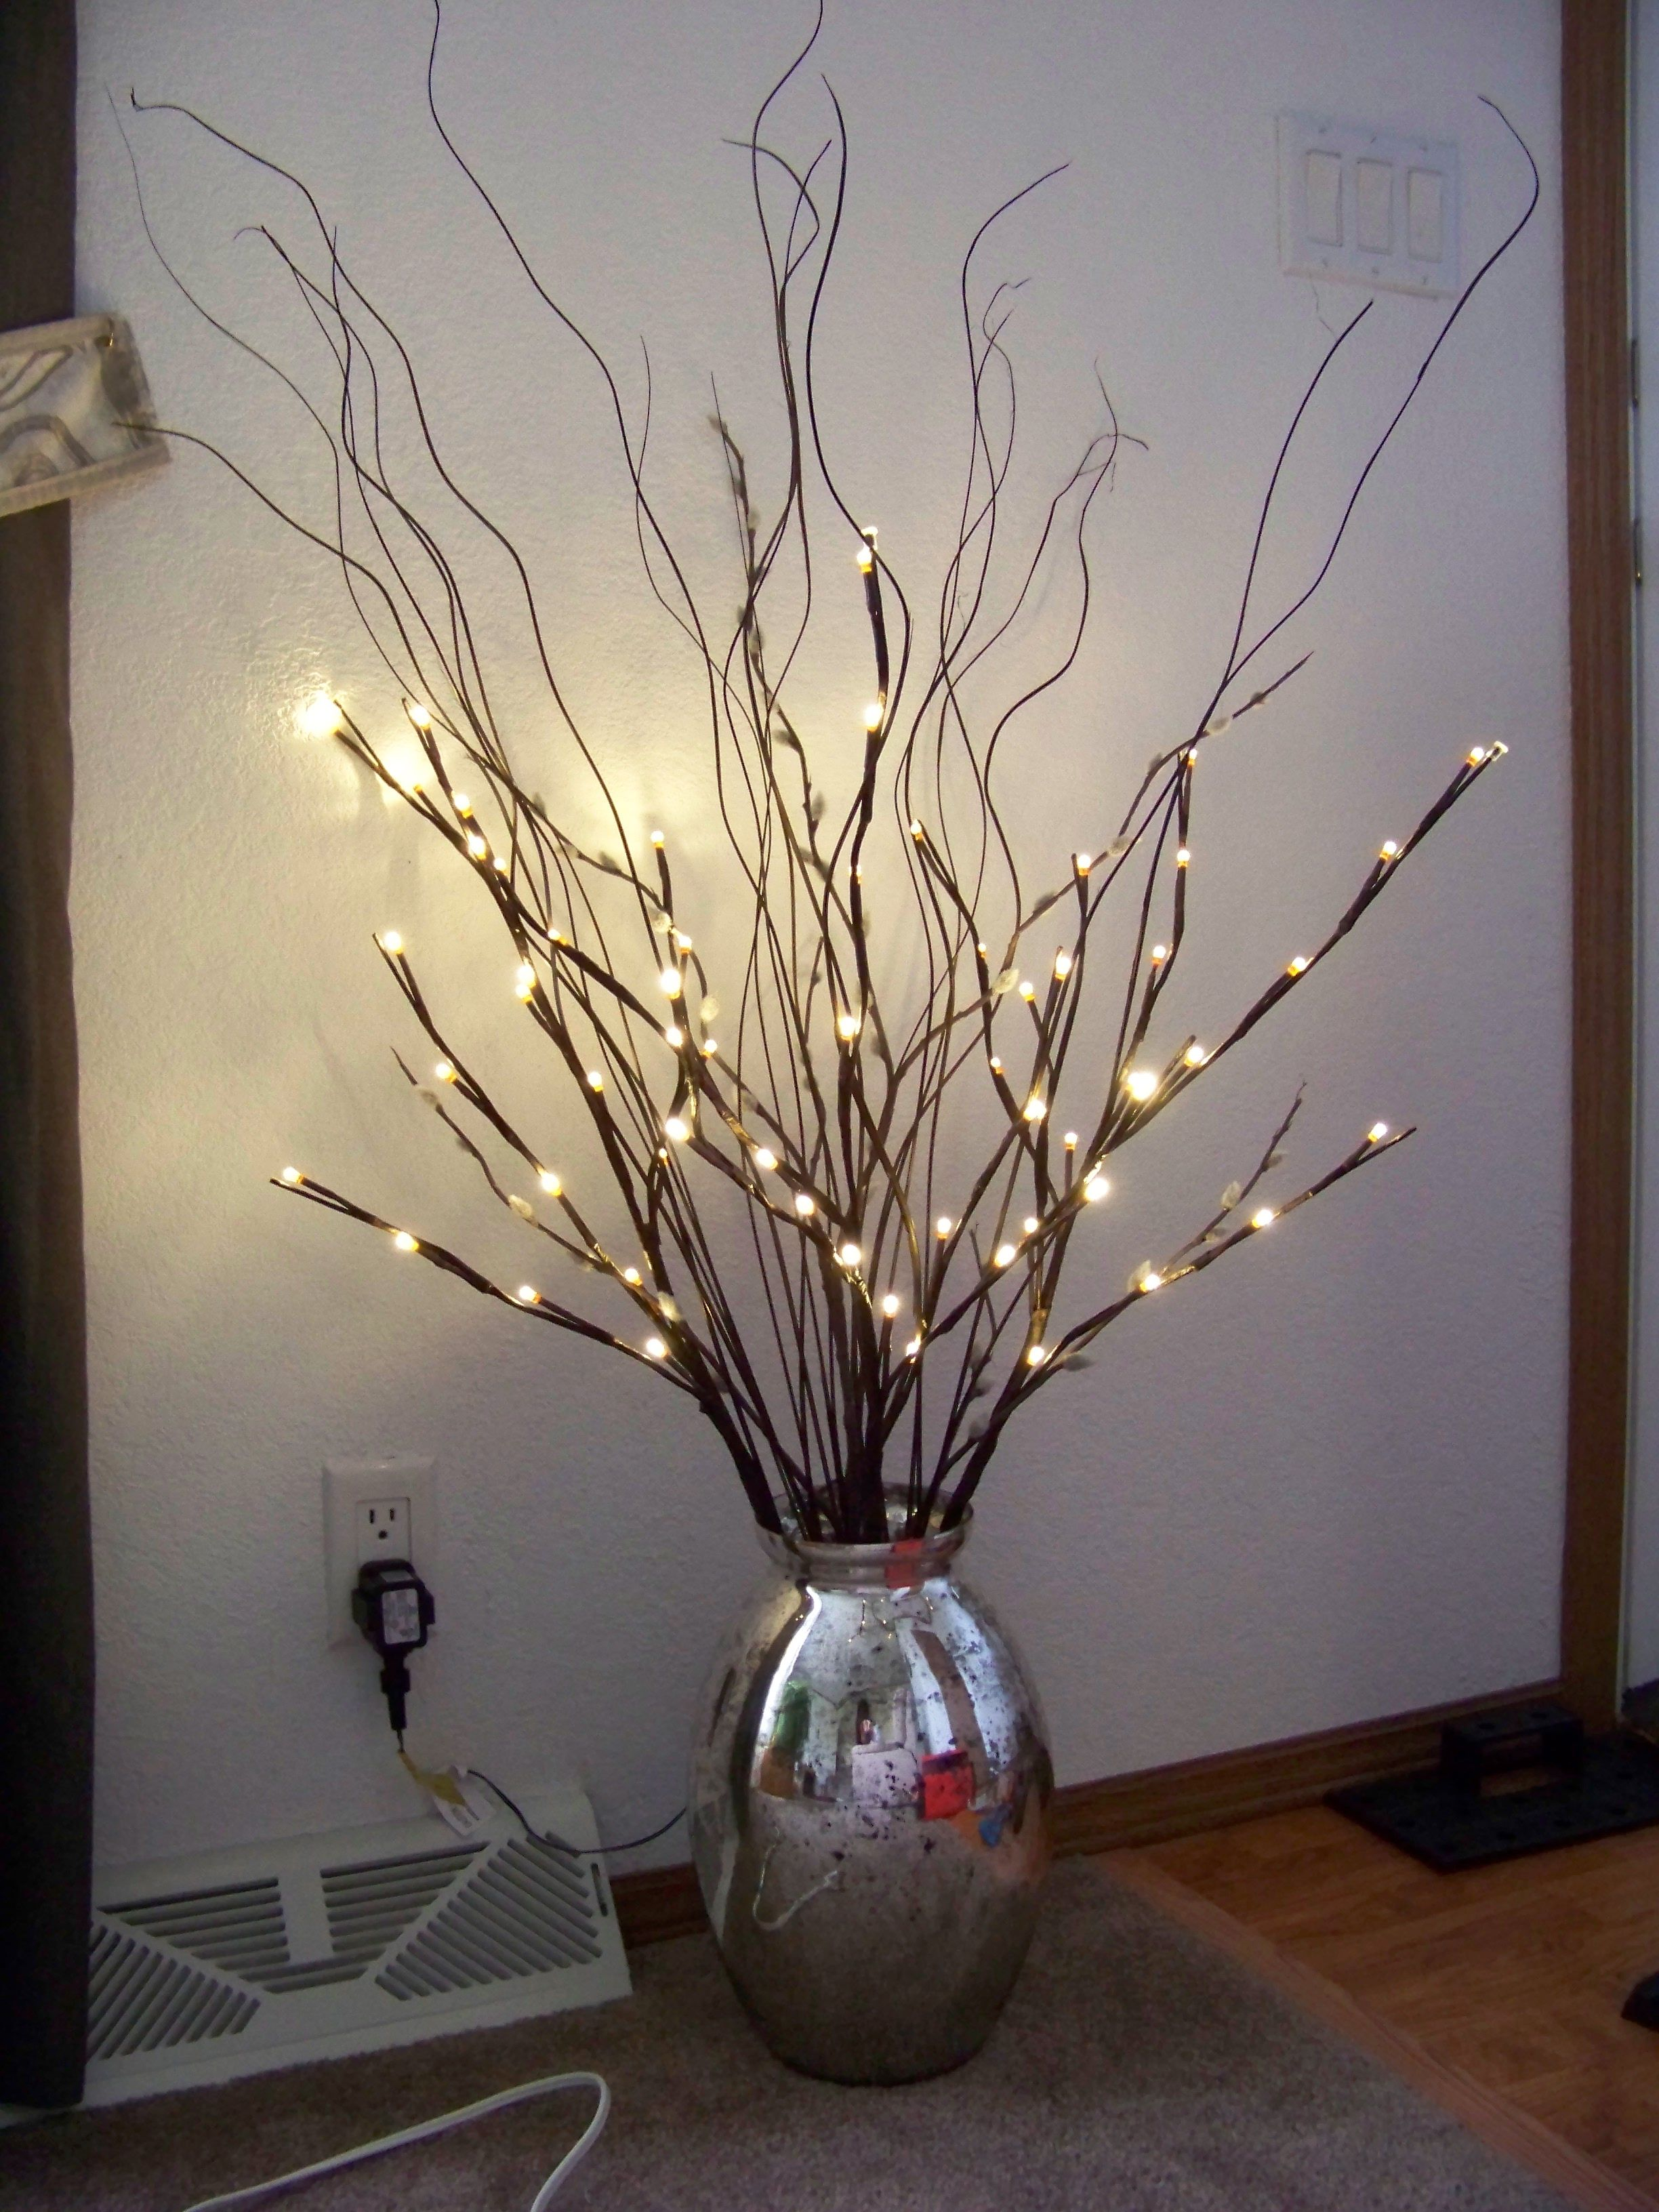 Image Result For Lighted Twig Branches Glass Vase Plants Amp Florals In 2019 Branch Decor